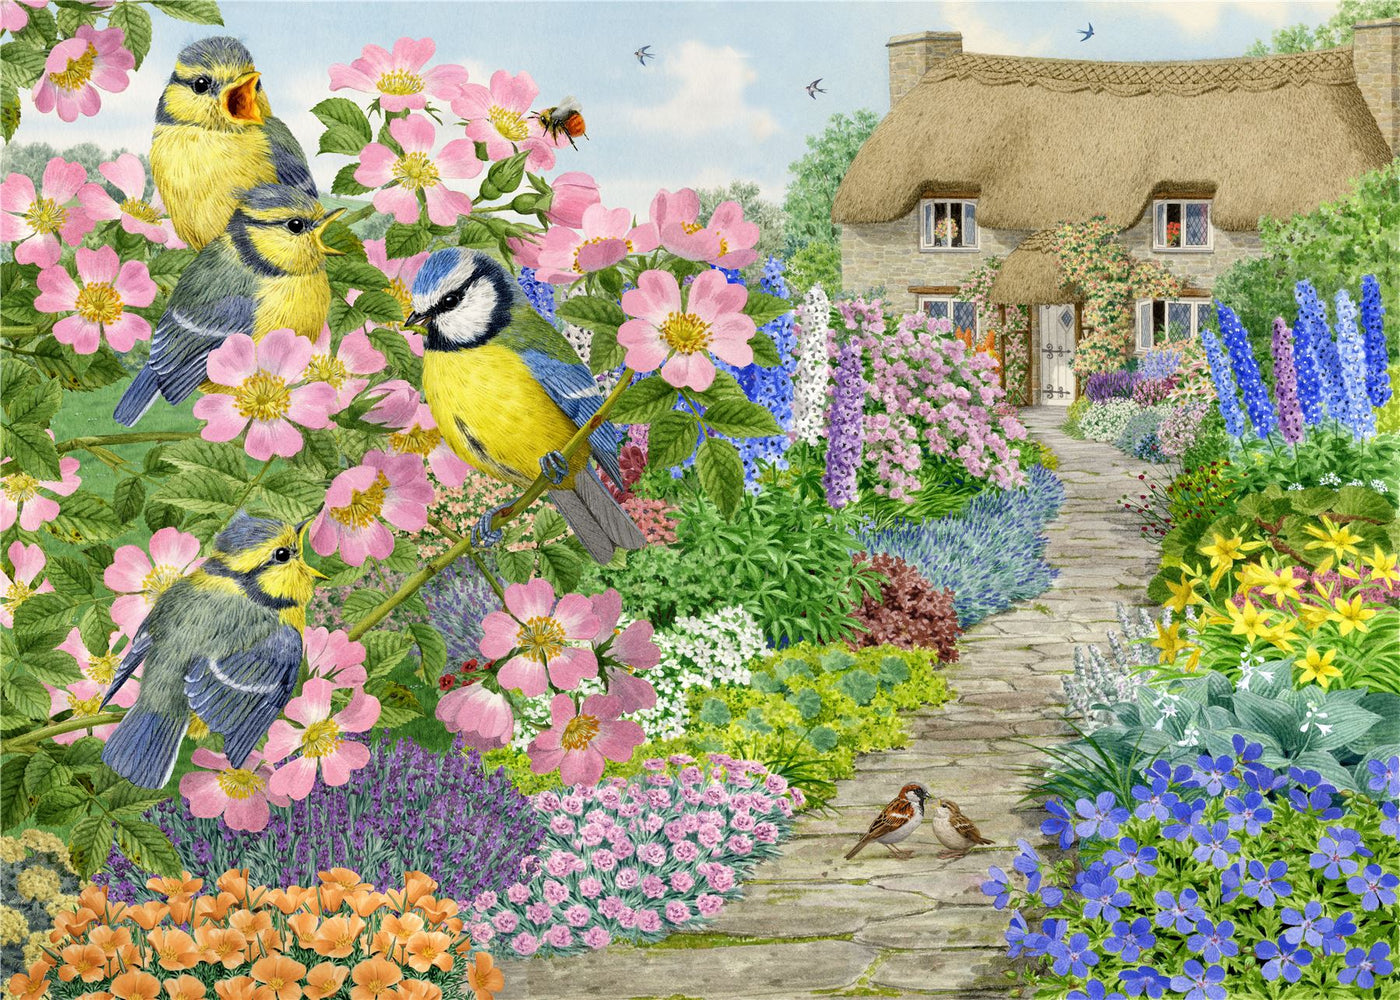 Cottage Garden Birds - Sarah Adams 1000 and 500 Piece Jigsaw Puzzle - All Jigsaw Puzzles